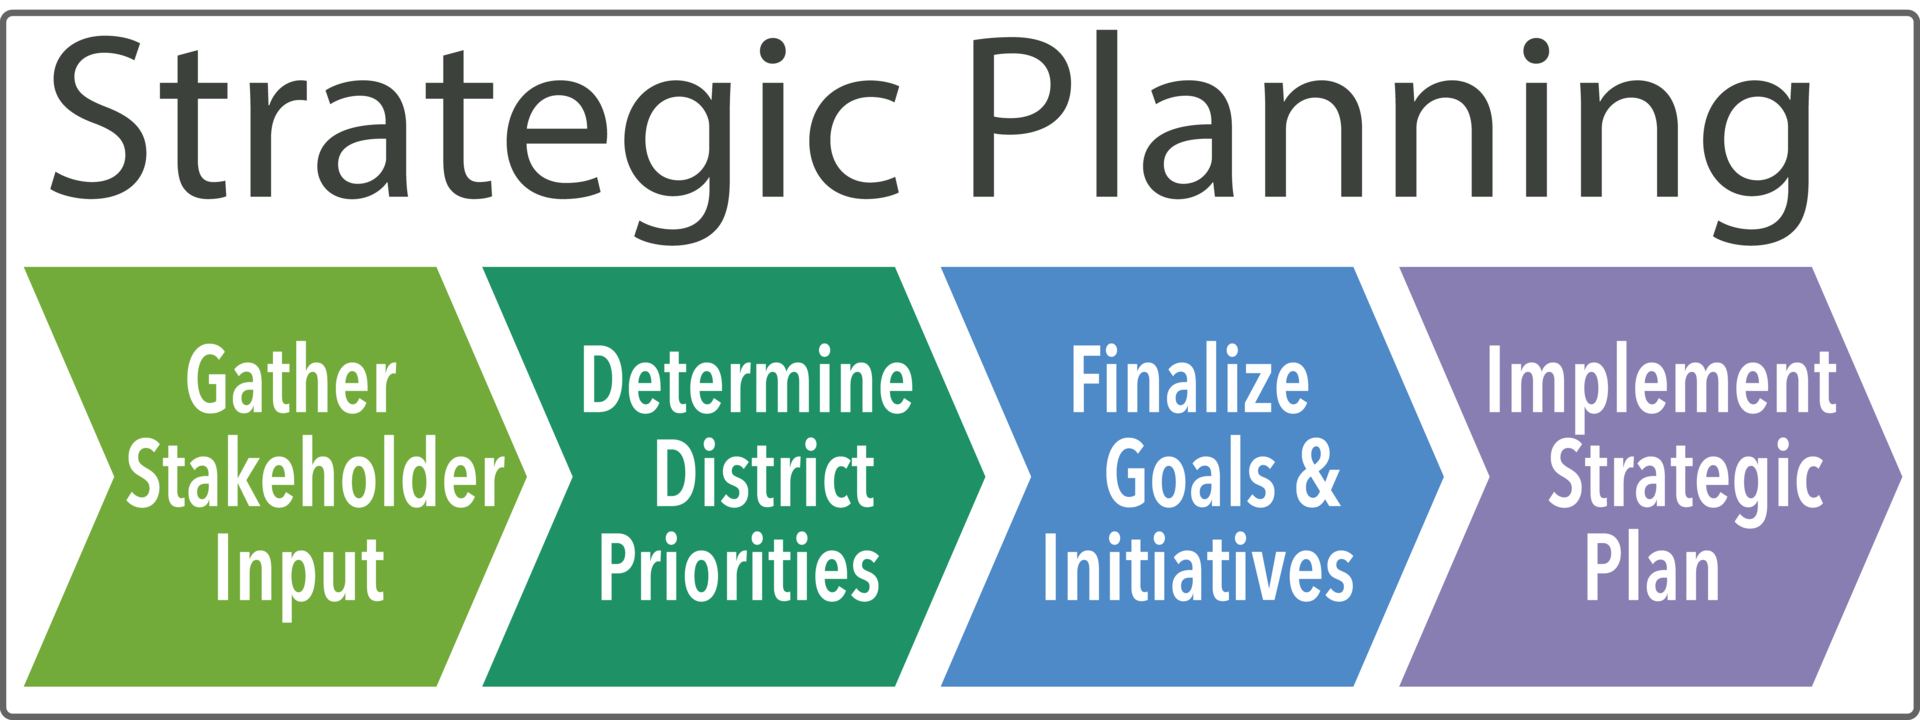 Strategic Planning flow chart graphic